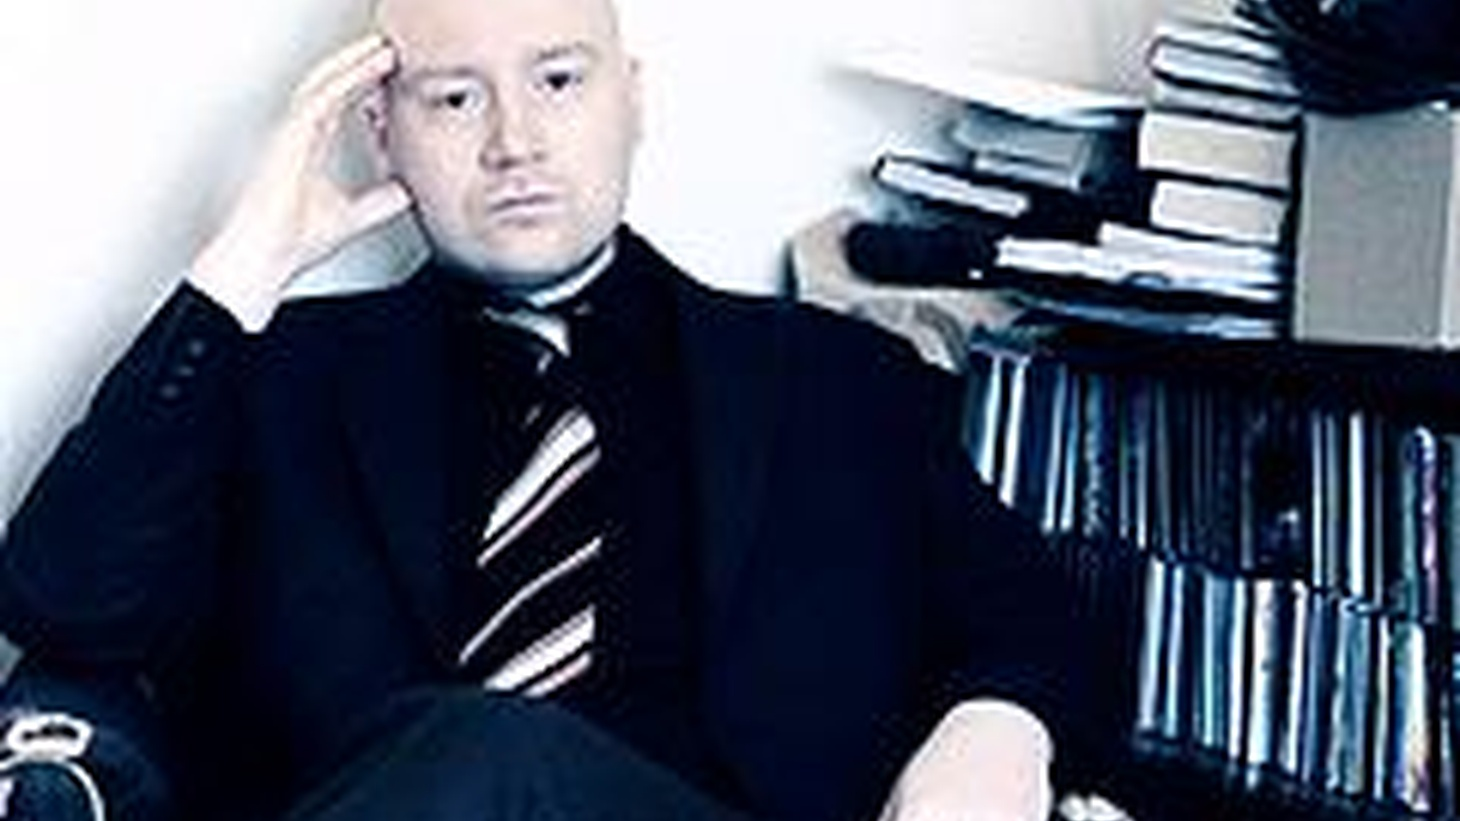 ...from Fordlandia.   Icelandic composer, Johann Johannsson's latest release, Fordlandia, is the second installment in his iconic American brand names trilogy...